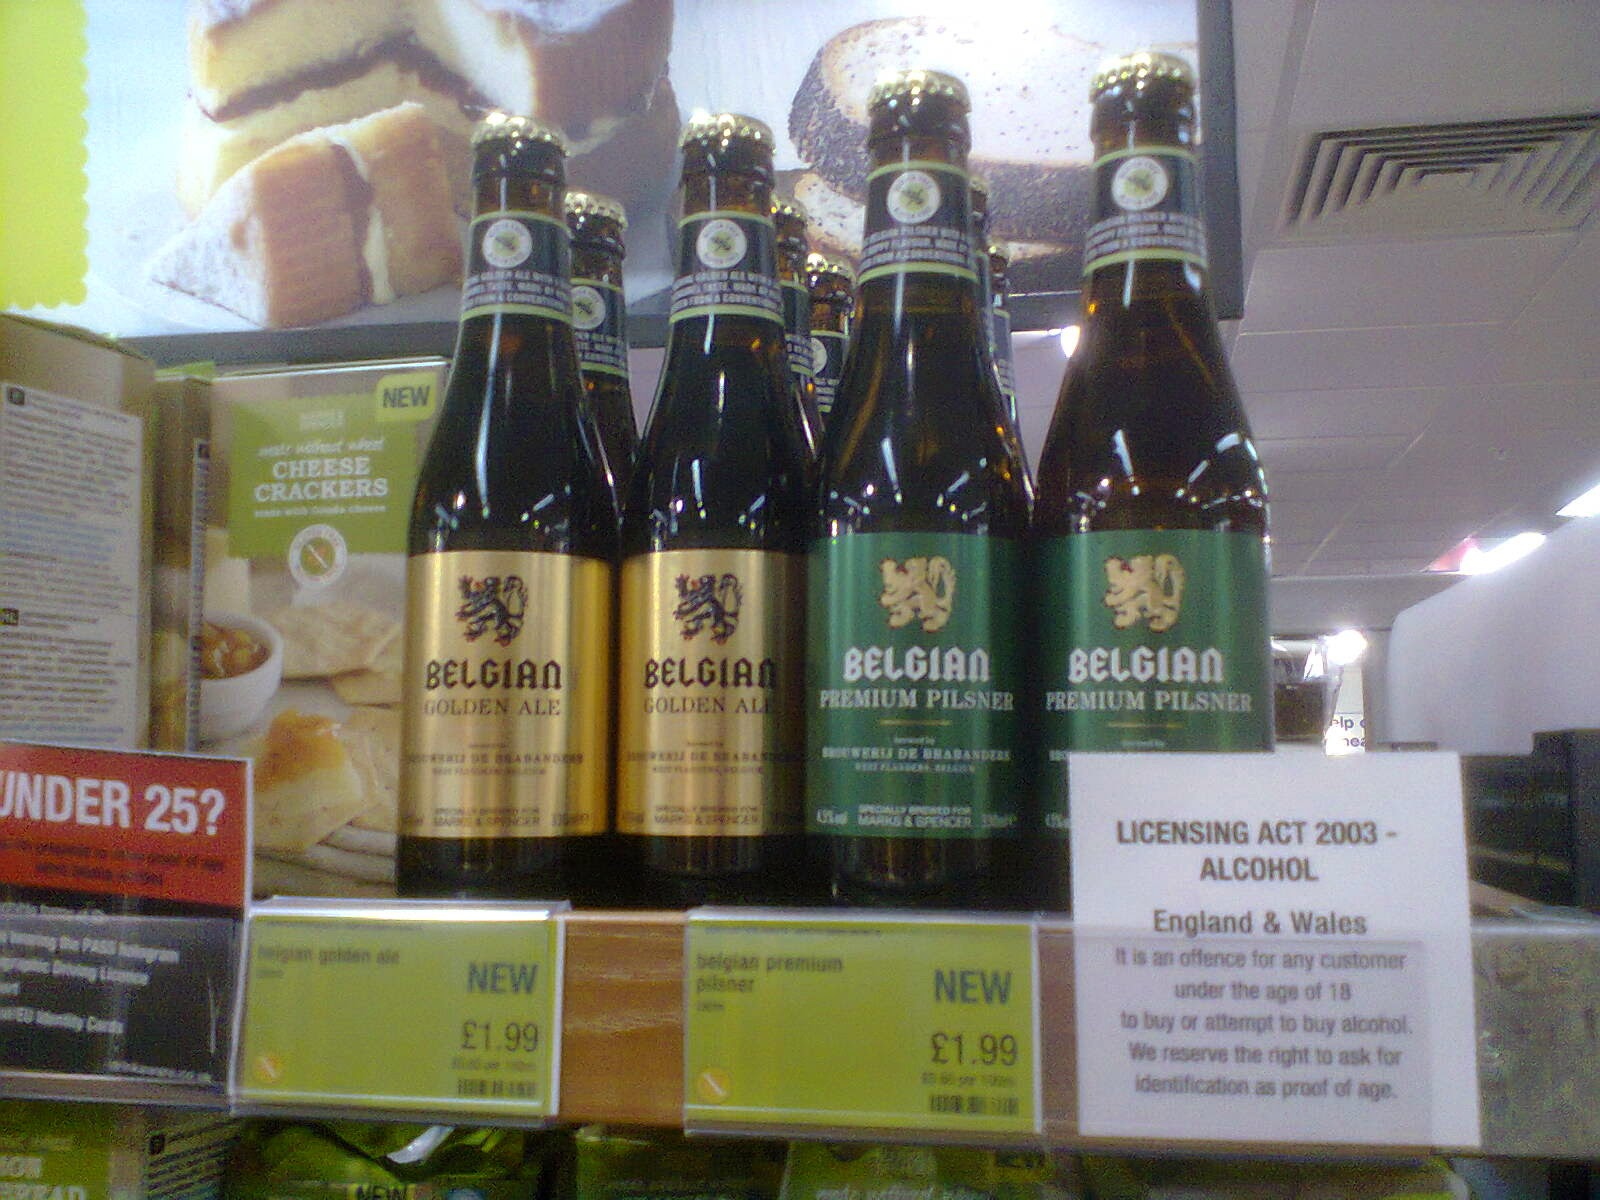 Gluten Free beer at Marks and Spencer